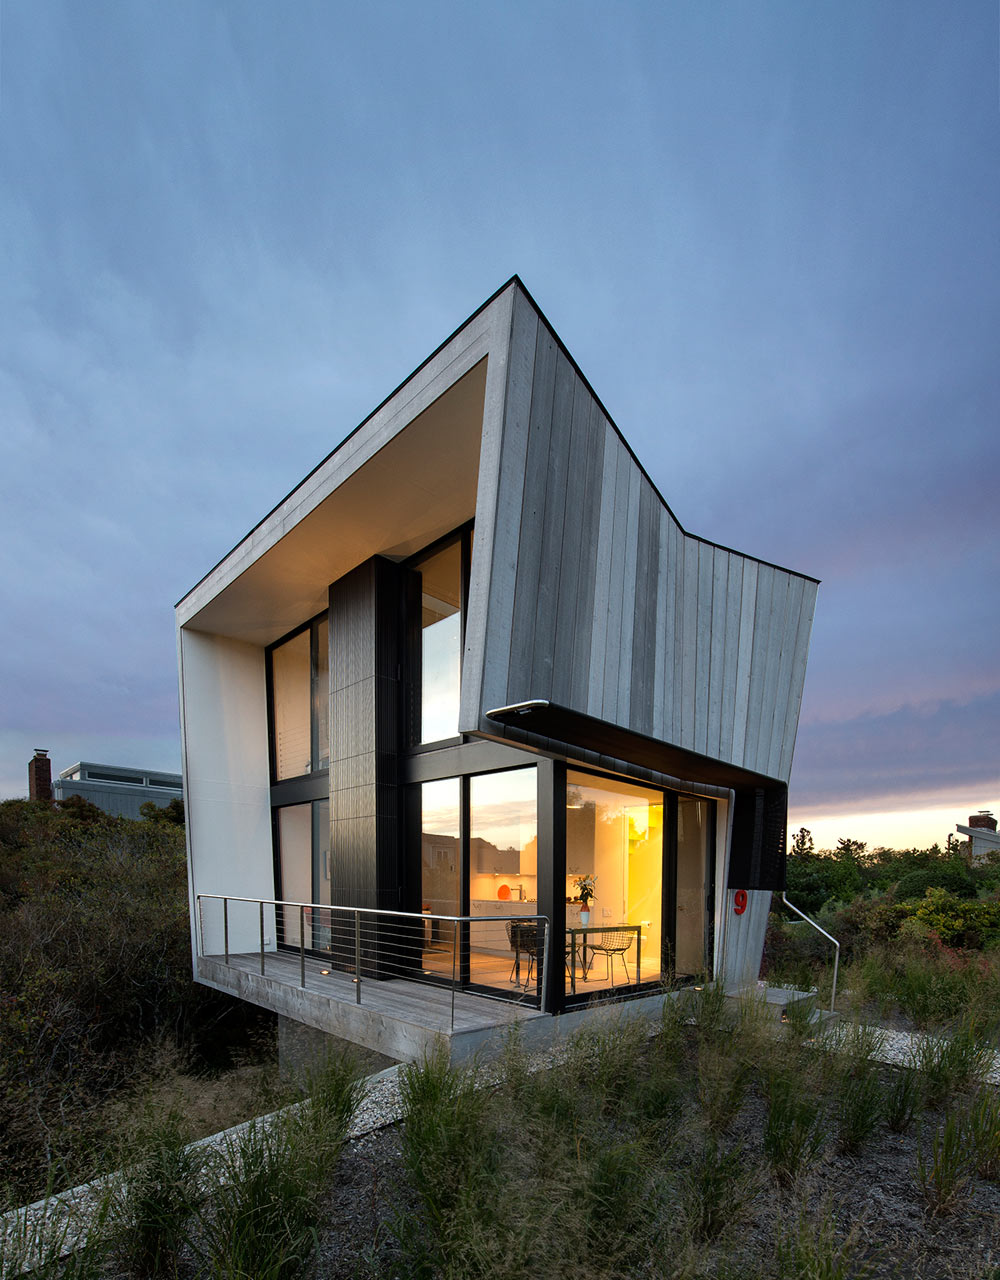 A Two-Story Beach House with a Small Footprint - Design Milk